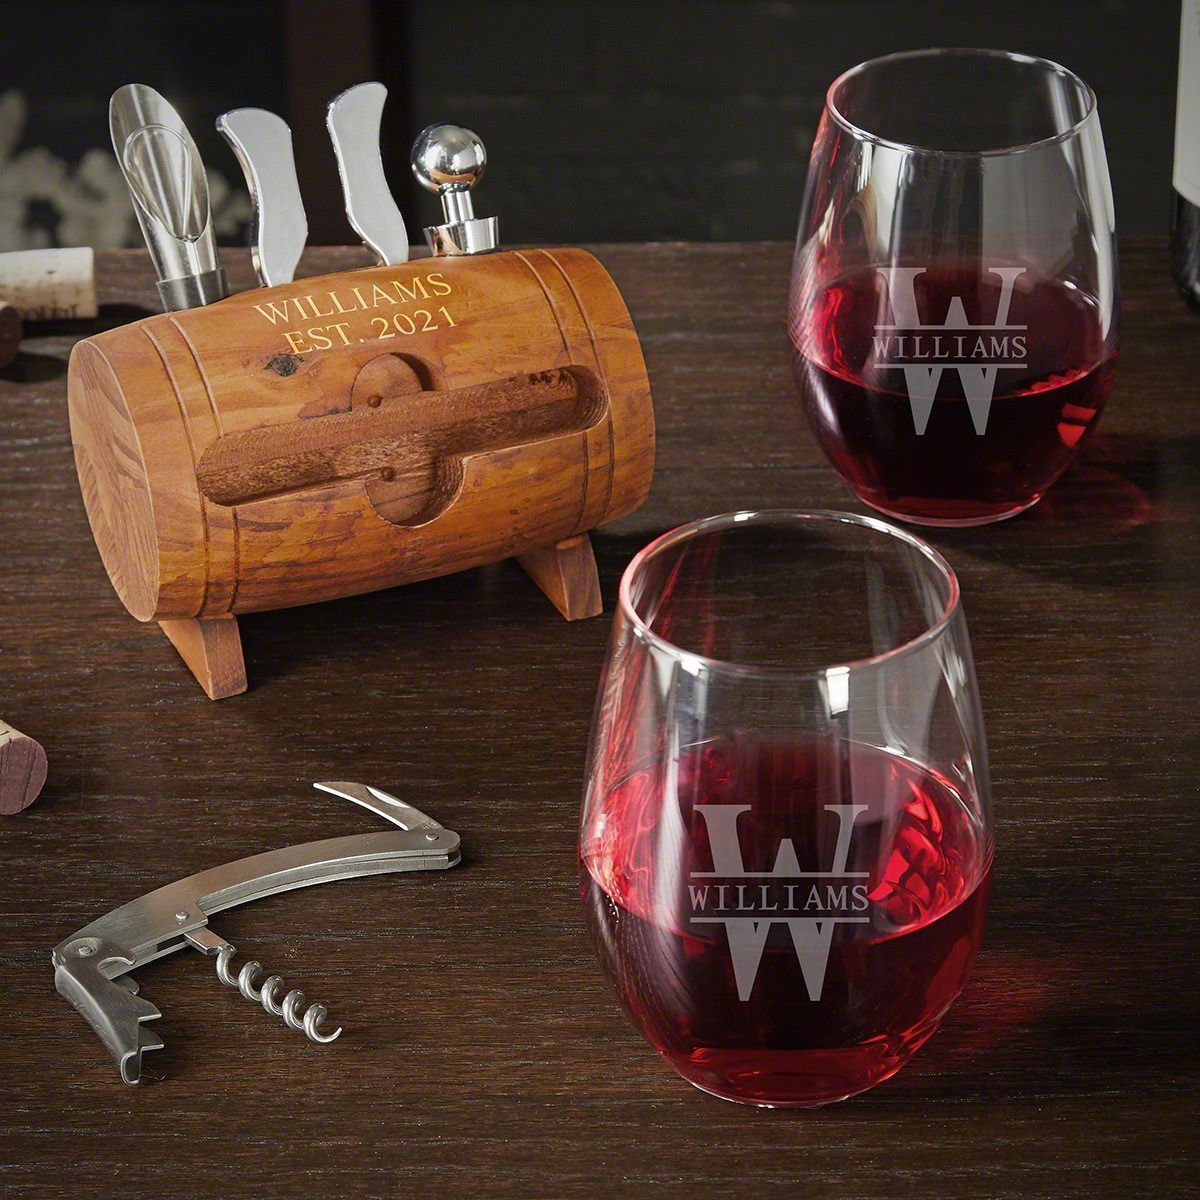 Best Wine Openers 2021 Oakmont Personalized Wine Opener Set with Wine Glasses in 2020